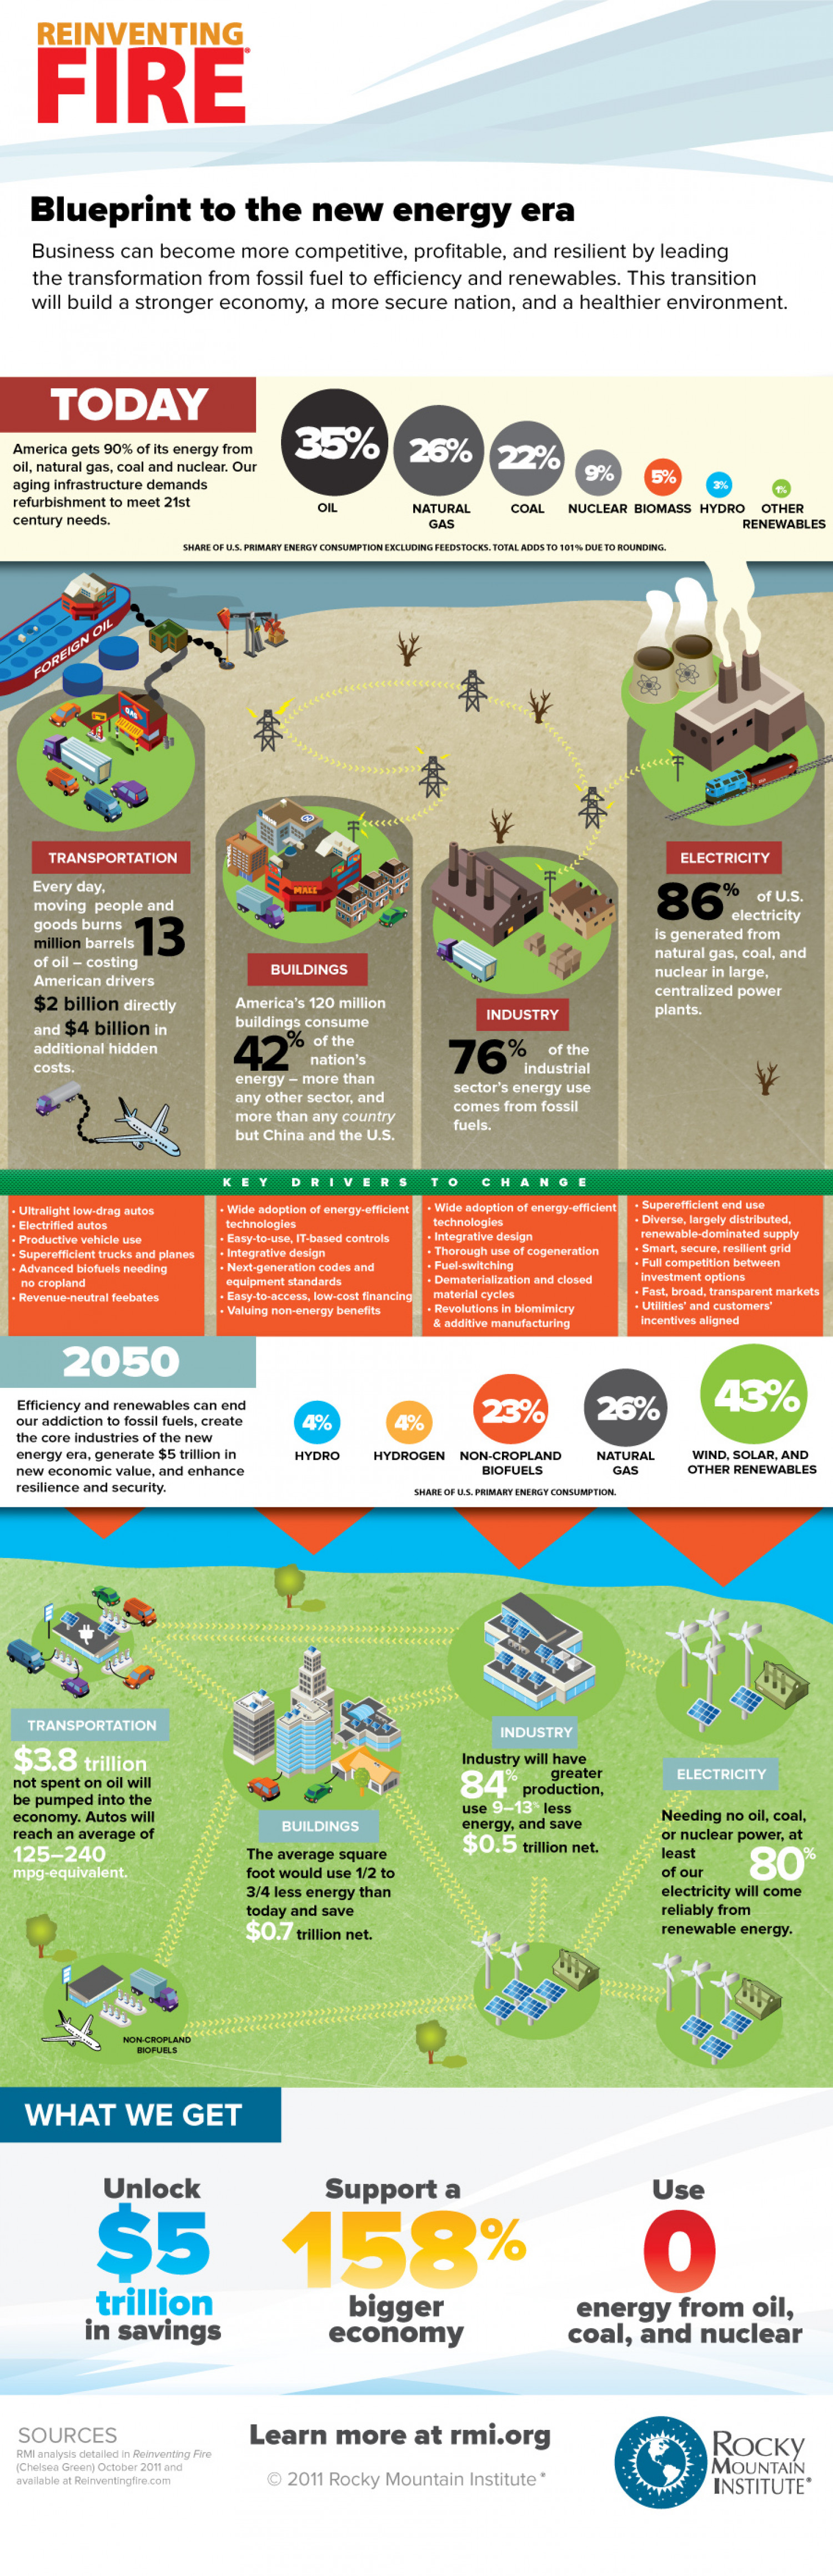 Reinventing Fire Infographic